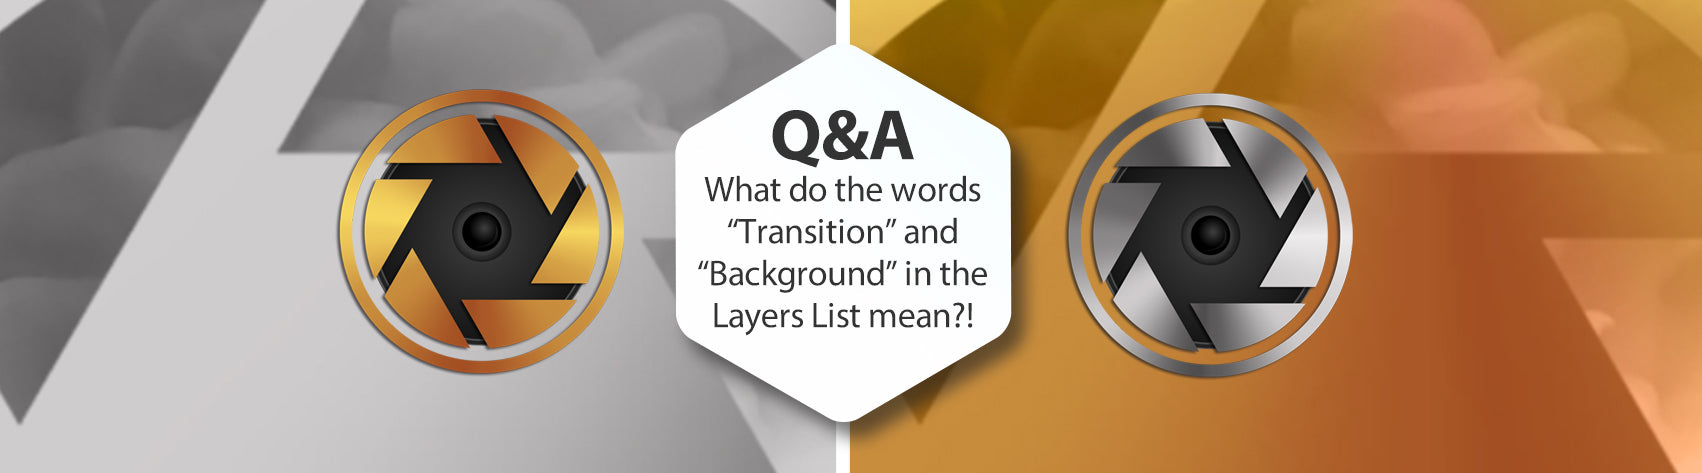 "Q&A - What do the words ""Transition"" and ""Background"" in the Layers List mean?!"